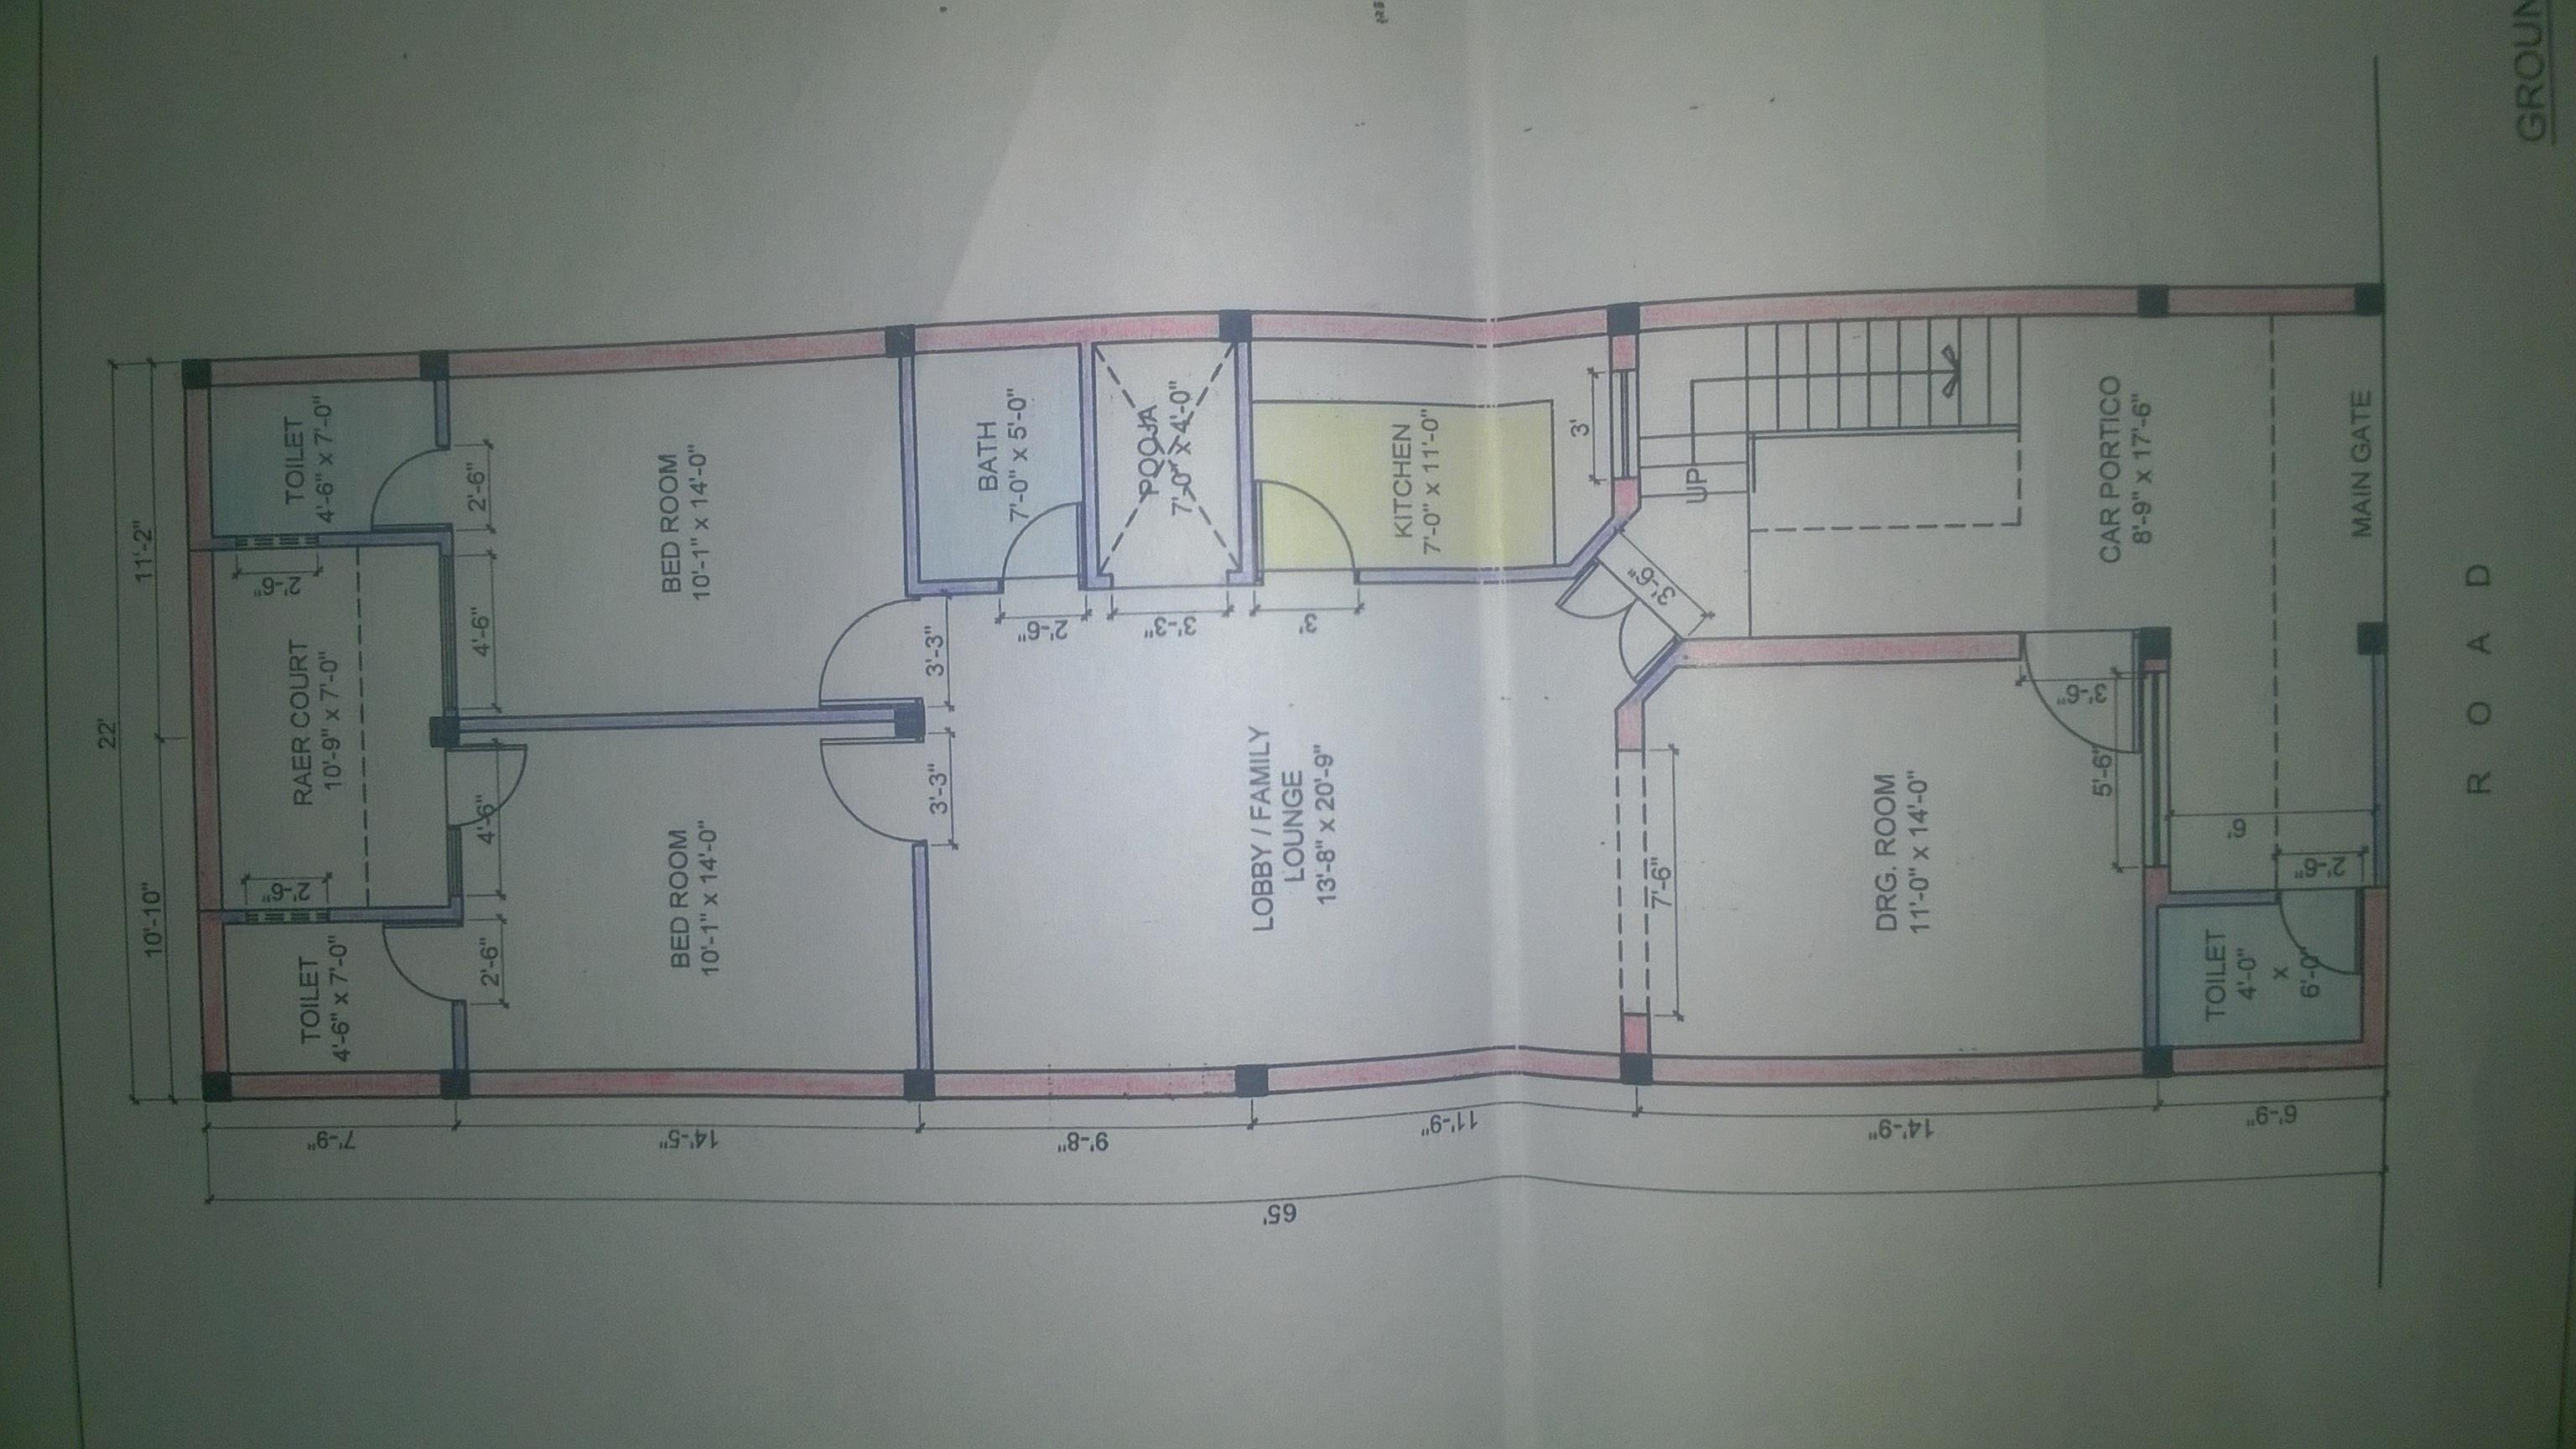 22*65 feet plot layout, two be....